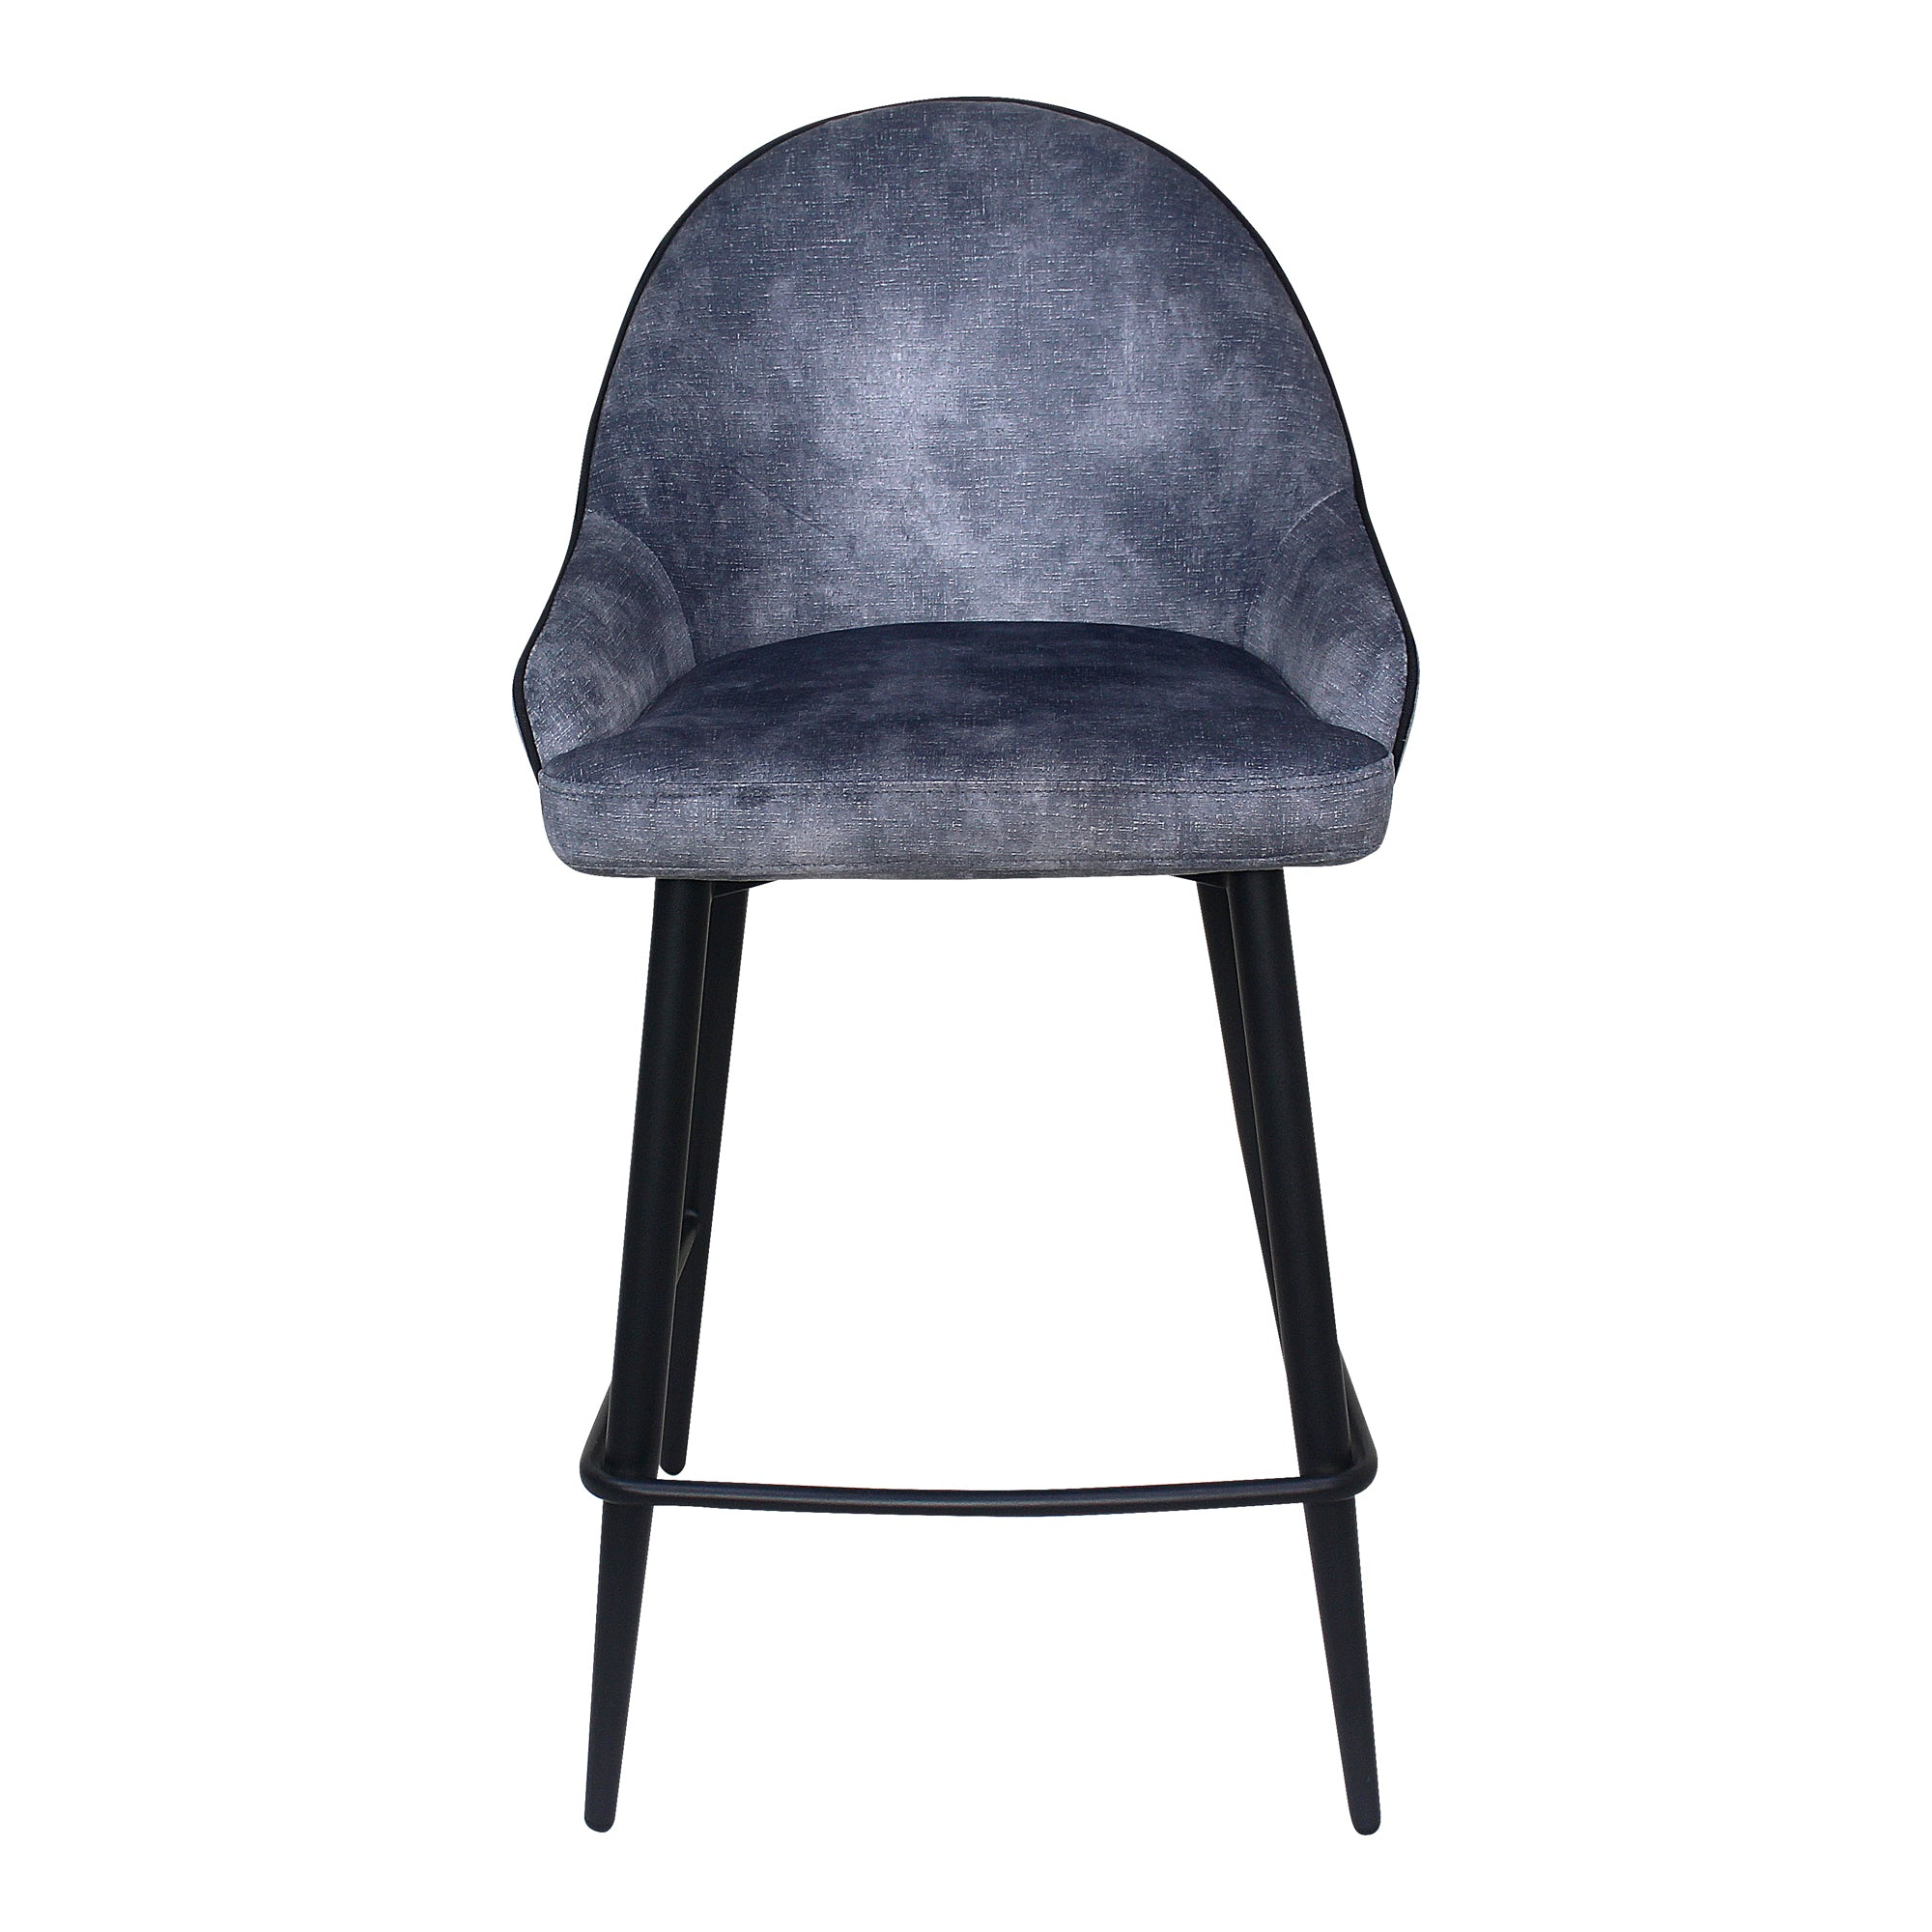 ASTBURY COUNTER STOOL, Grey - Tops-Dress